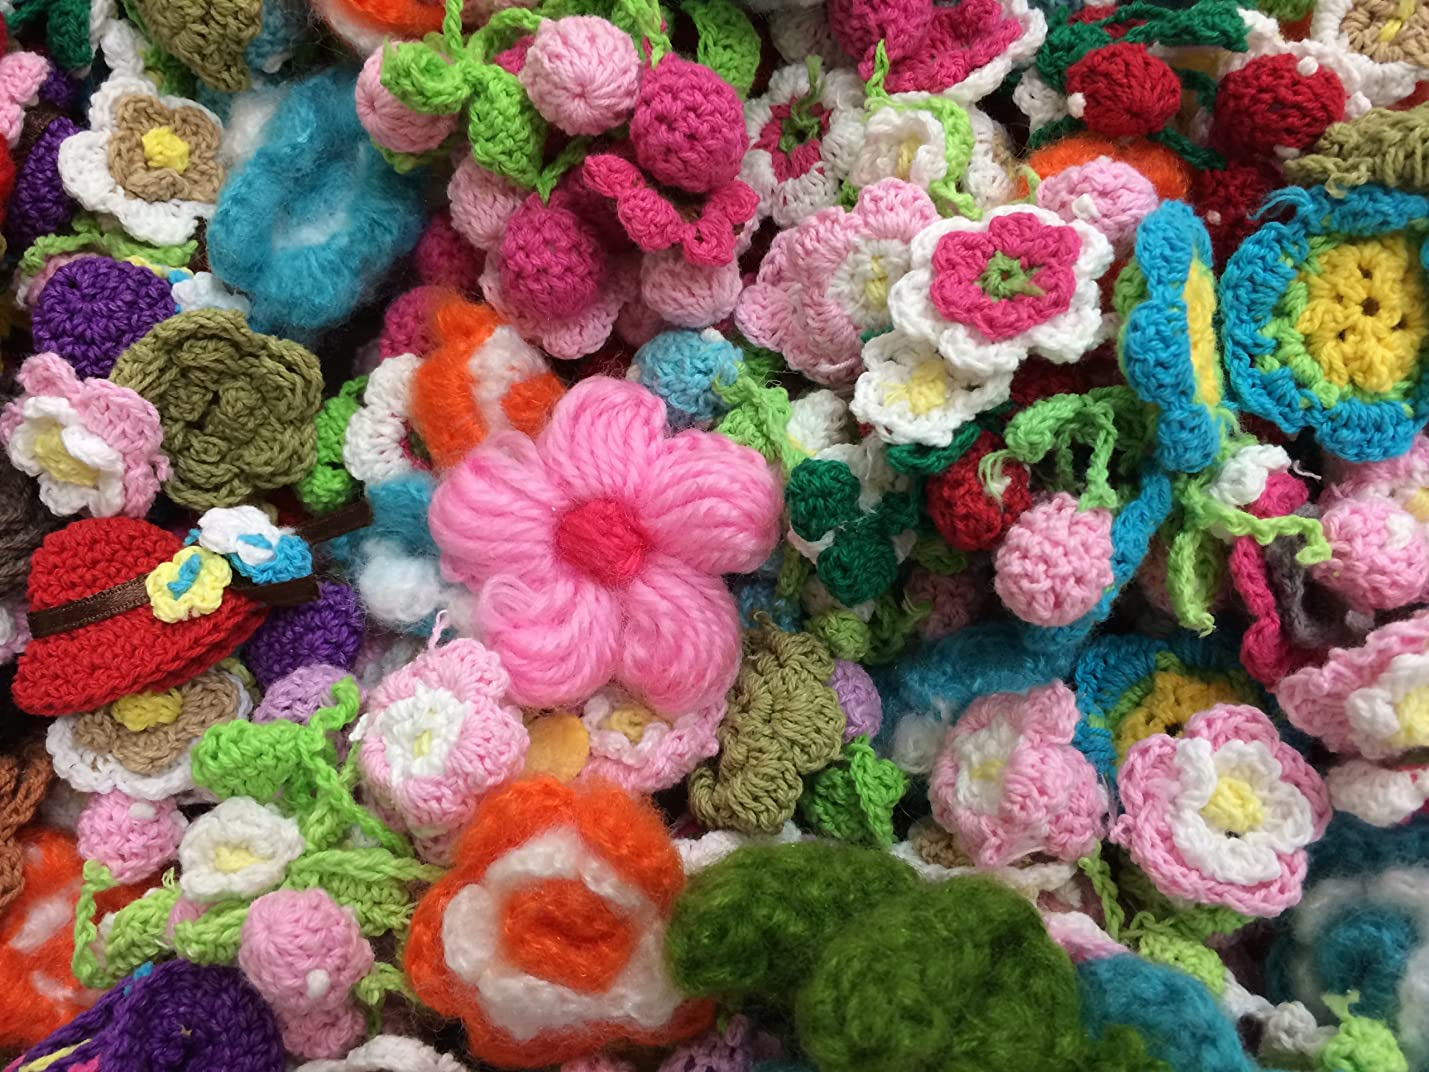 30pc Assorted Crocheted Flower Applique Embellishments [Office Product] uvtuxqultywmu302